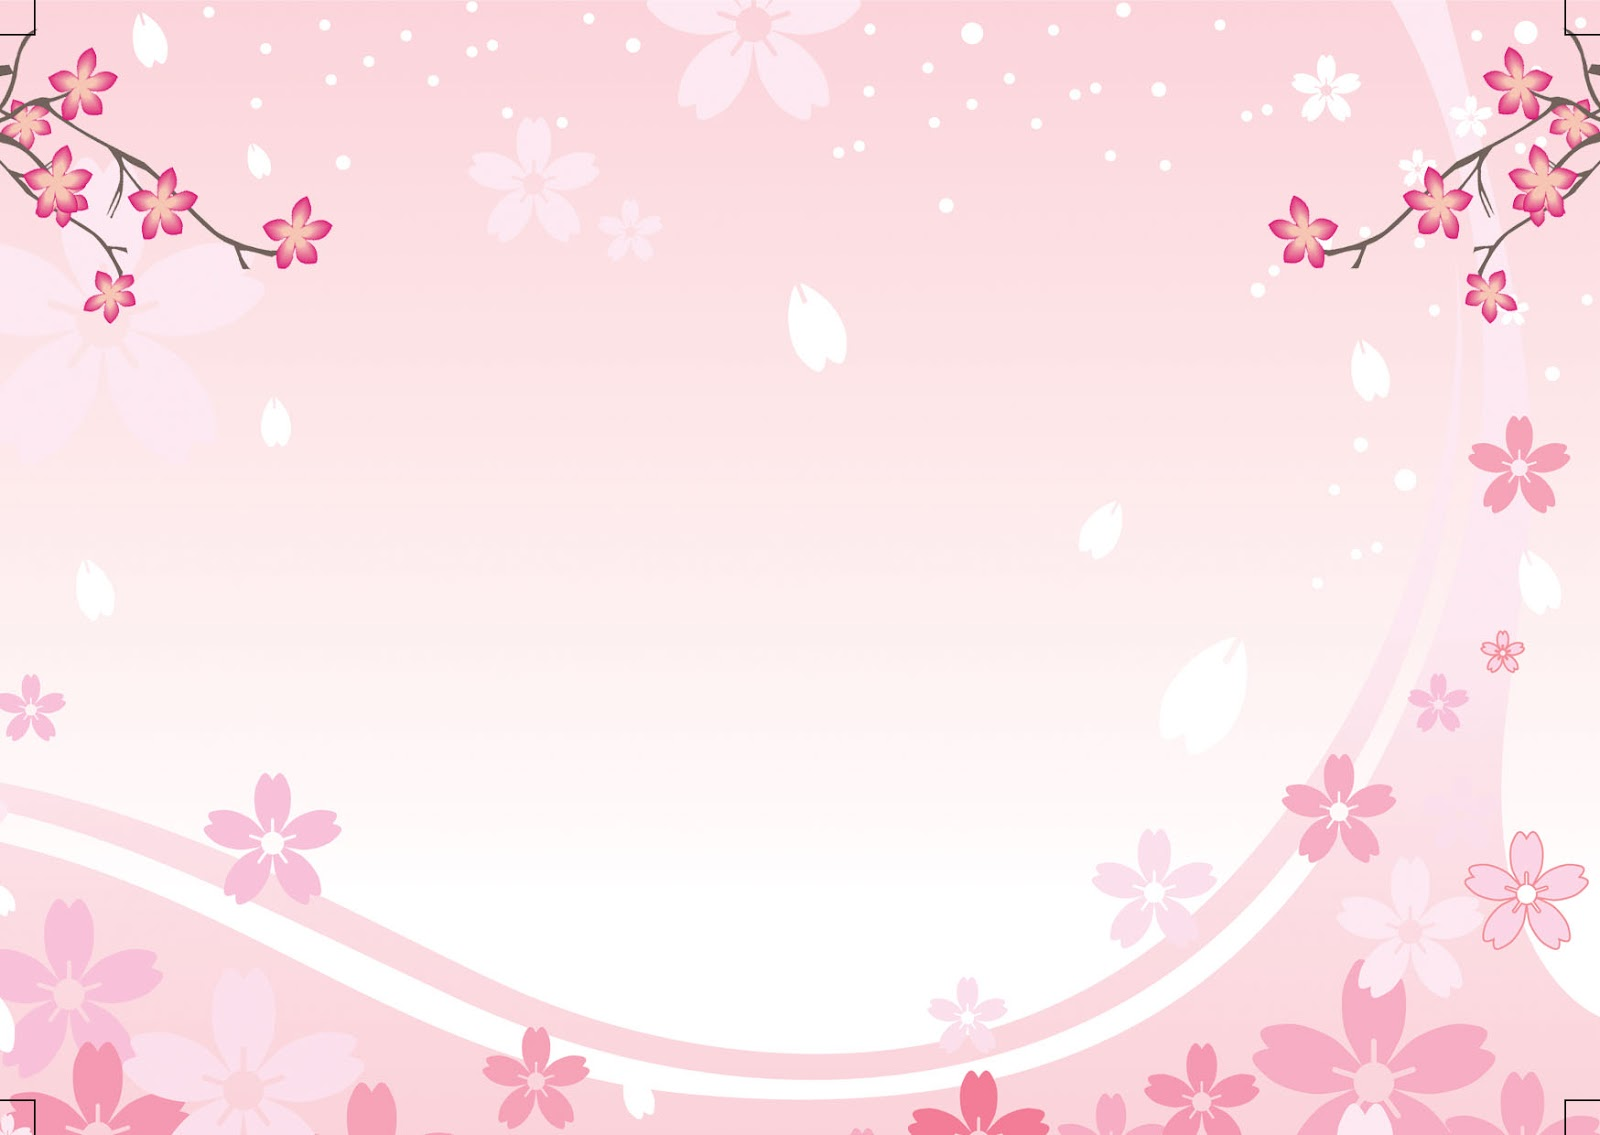 Background-Ucapan-Tasyakuran-Sakura-Flower-Pink-www.inidesain.com